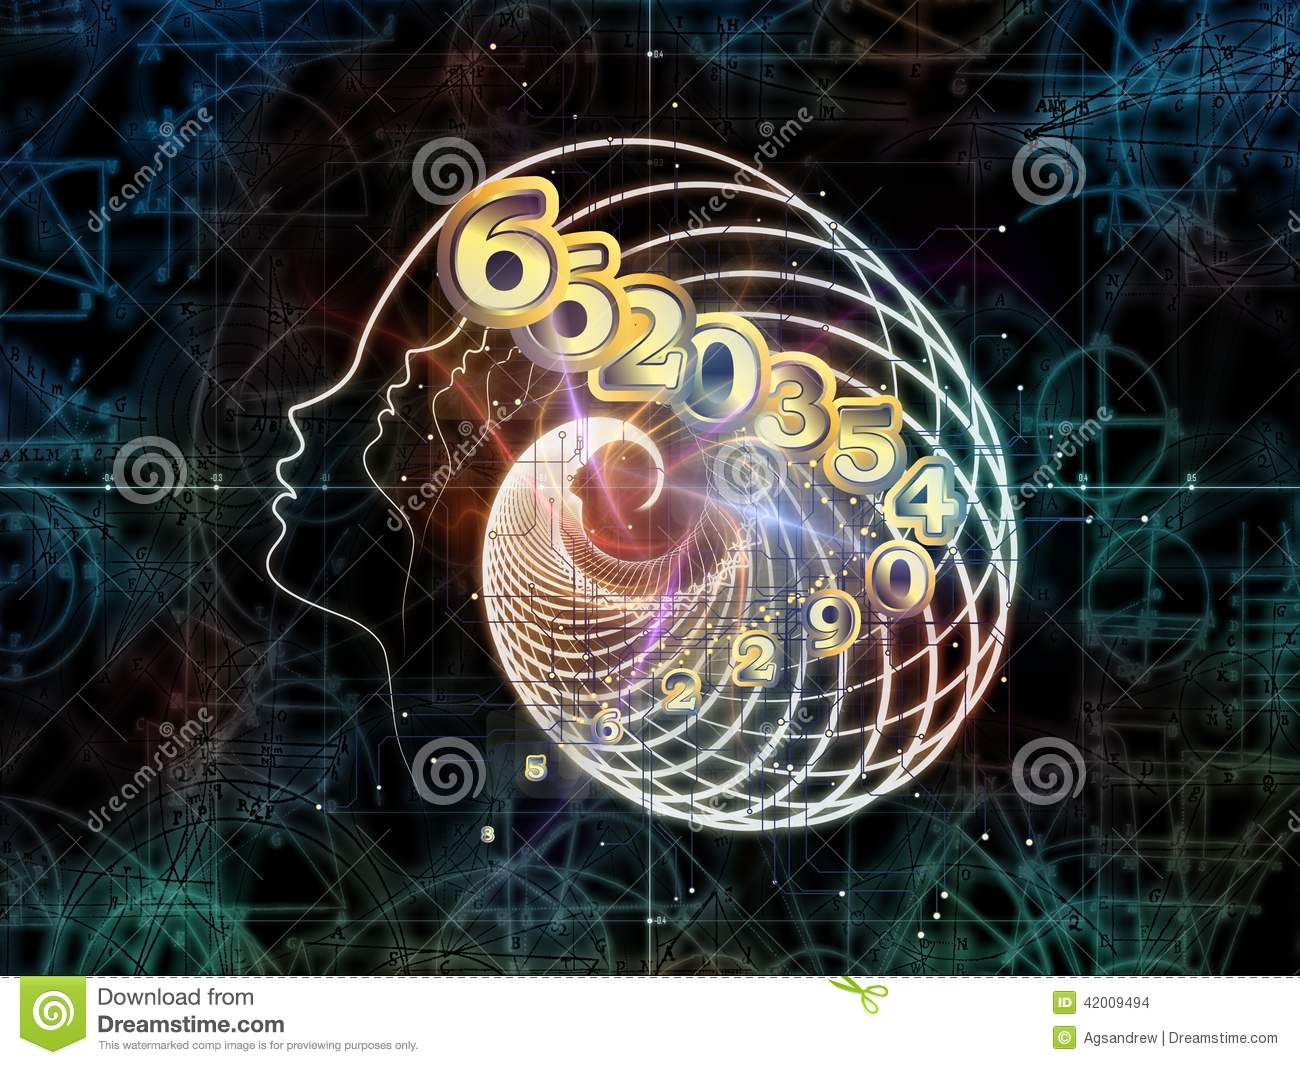 virtual mathematics mdash stock - photo #25